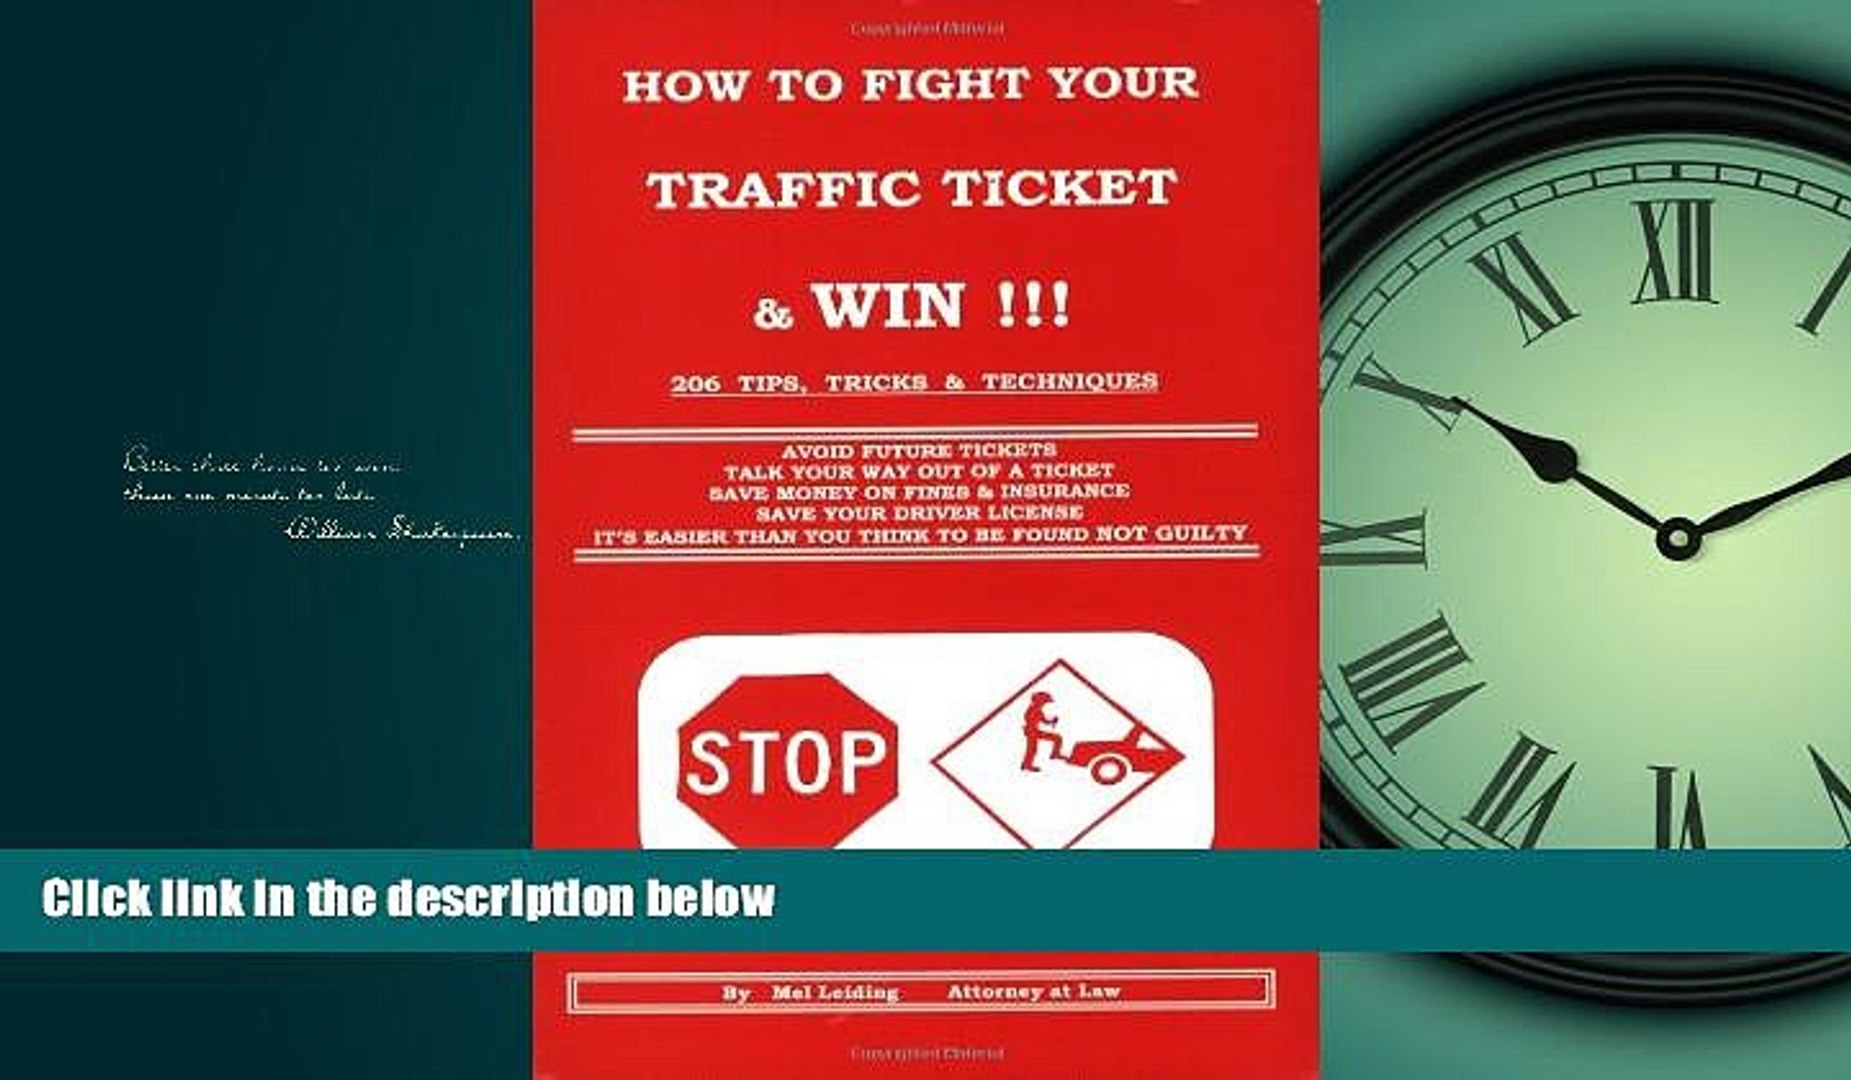 EBOOK ONLINE  How to Fight Your Traffic Ticket and Win!: 206 Tips Tricks and Techniques  BOOK